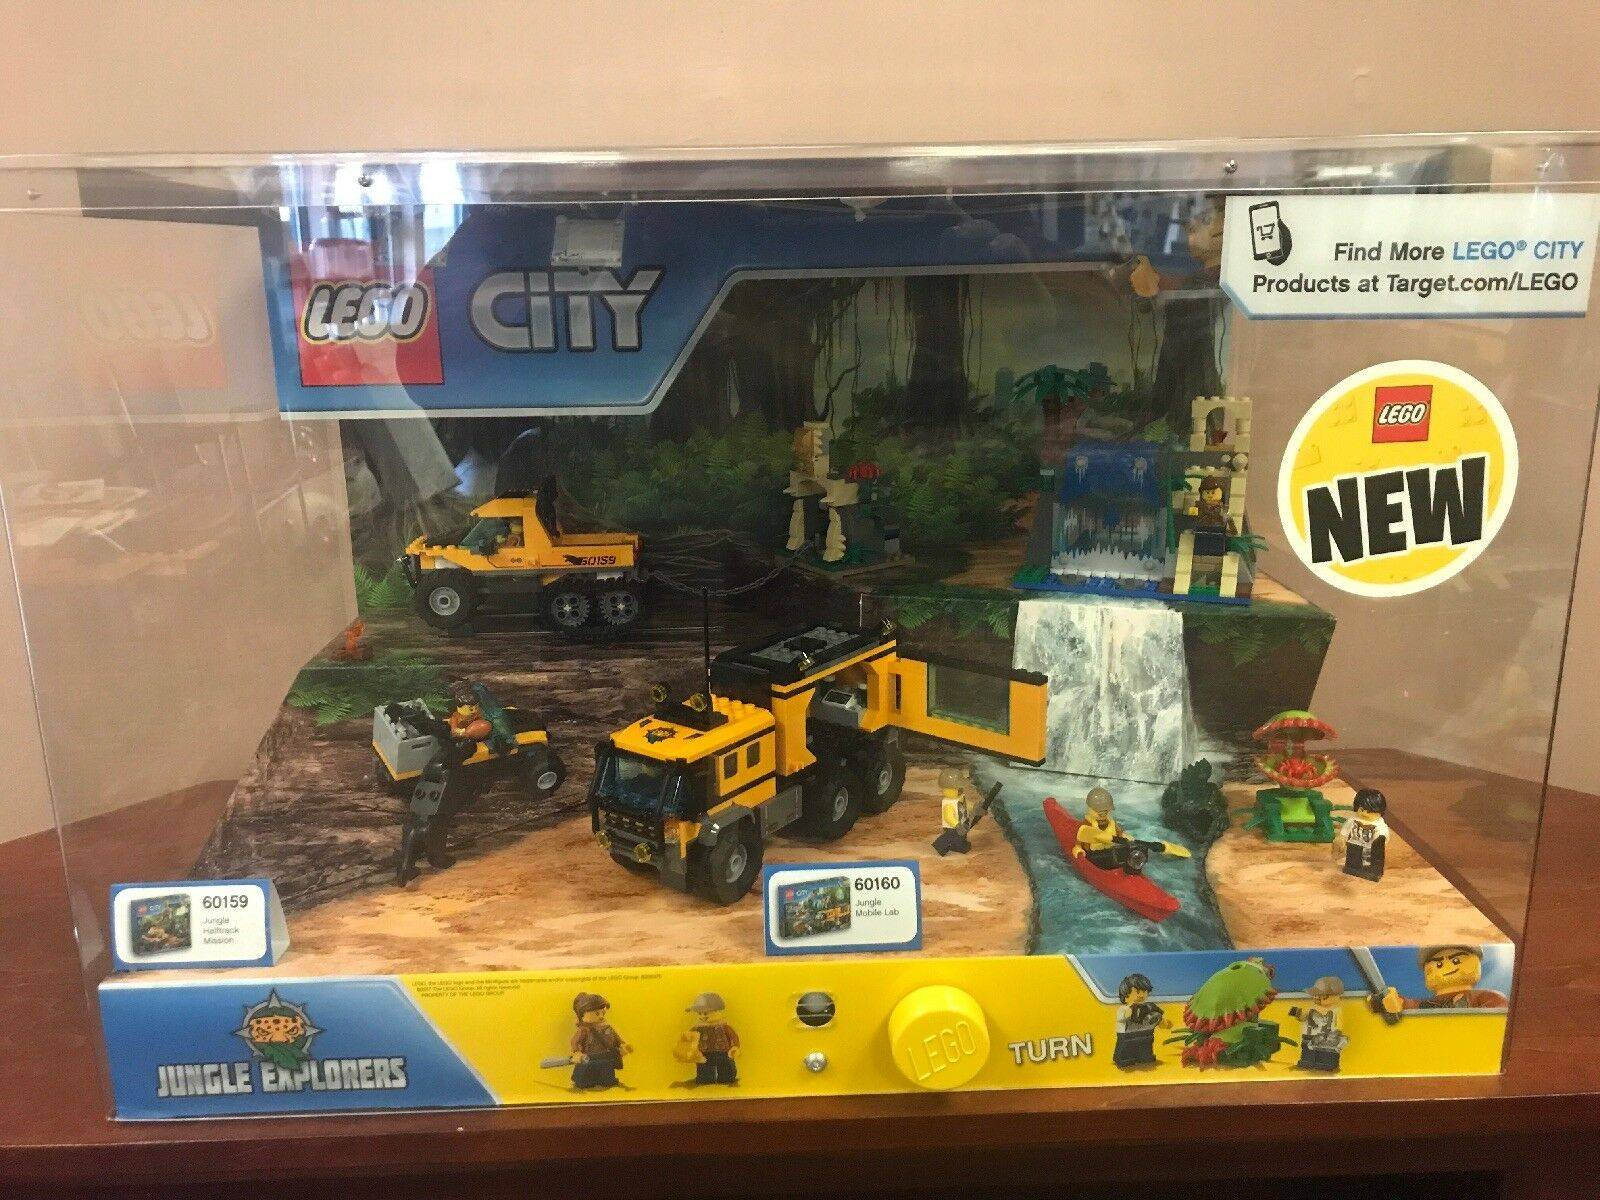 Lego Retail Store Display Lego City Jungle Explorers 60159 & 60160